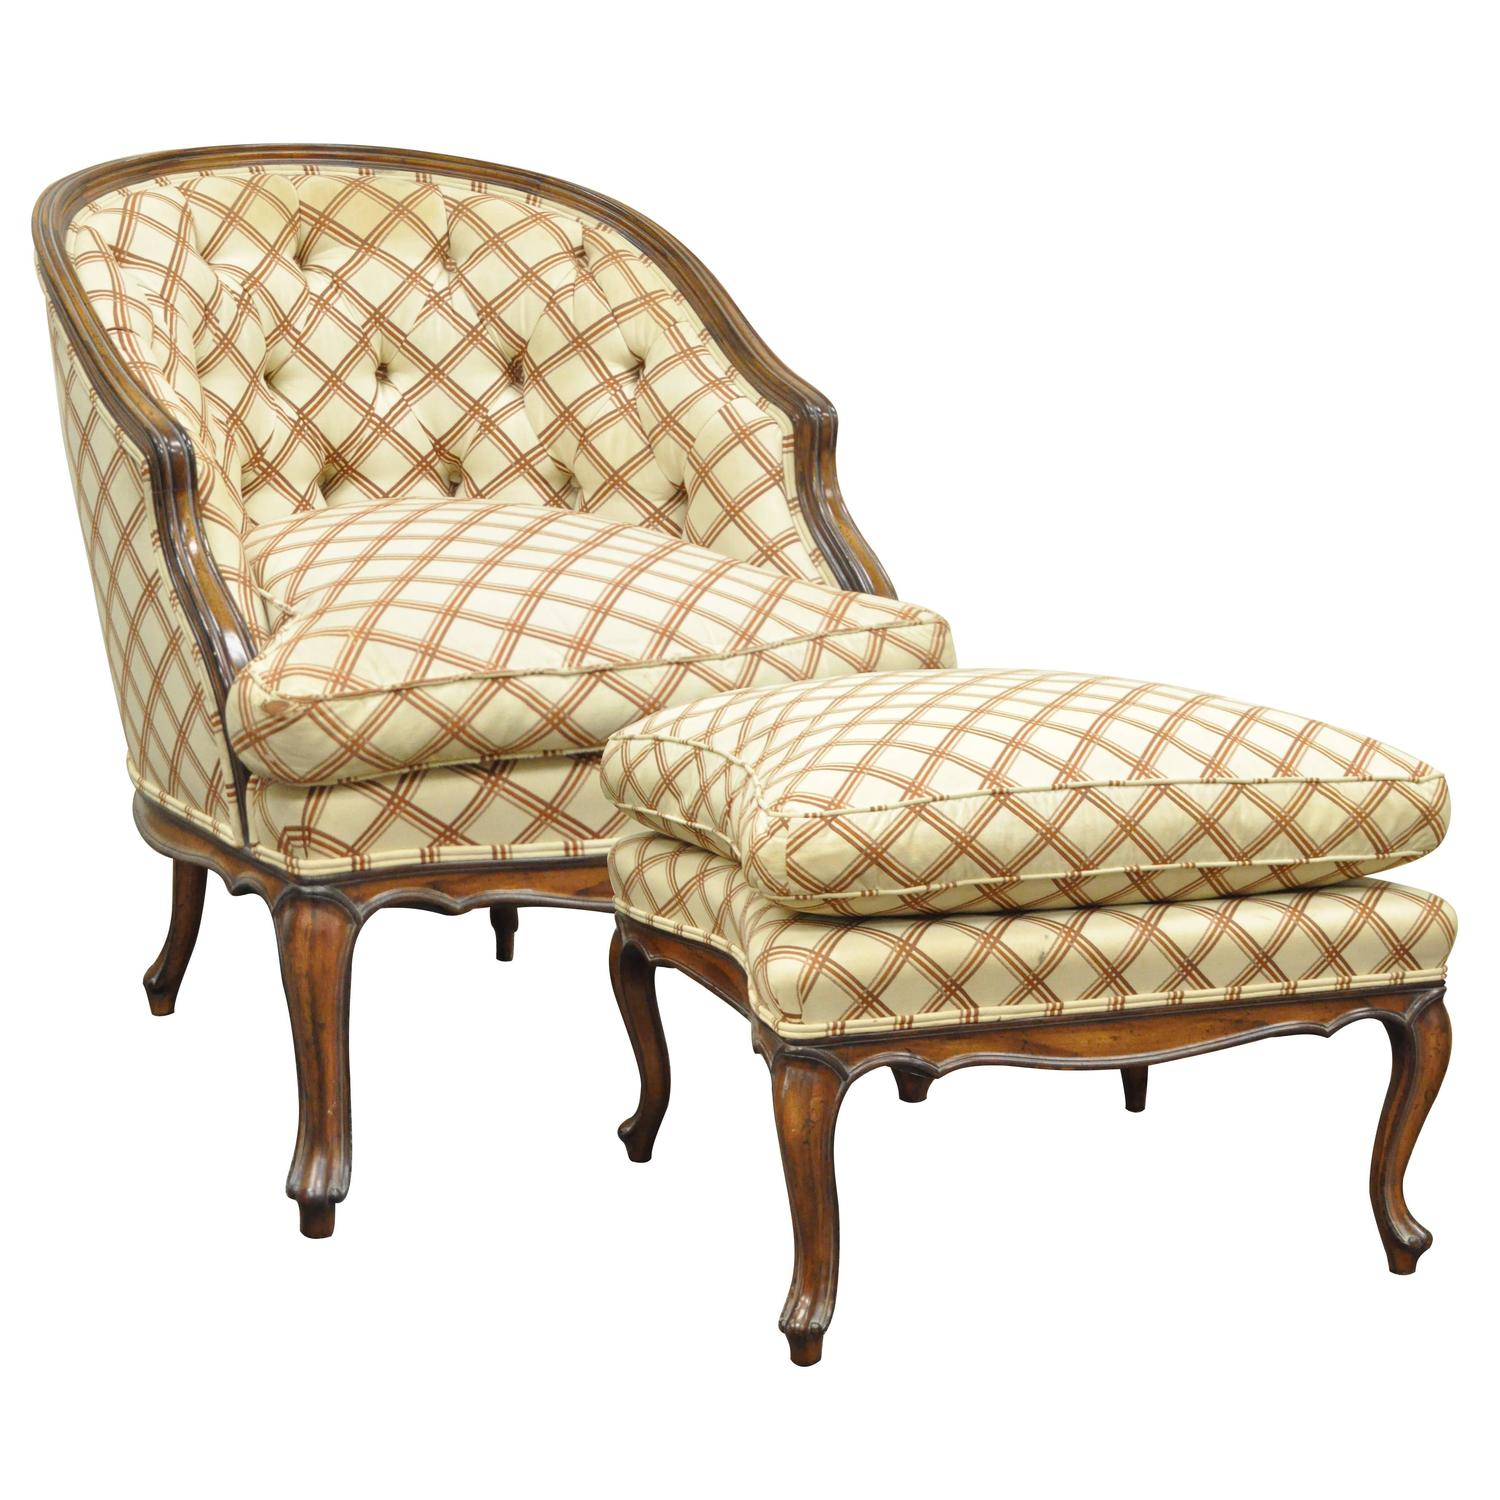 french louis chair creeper that turns into a vintage country xv style barrel back bergere